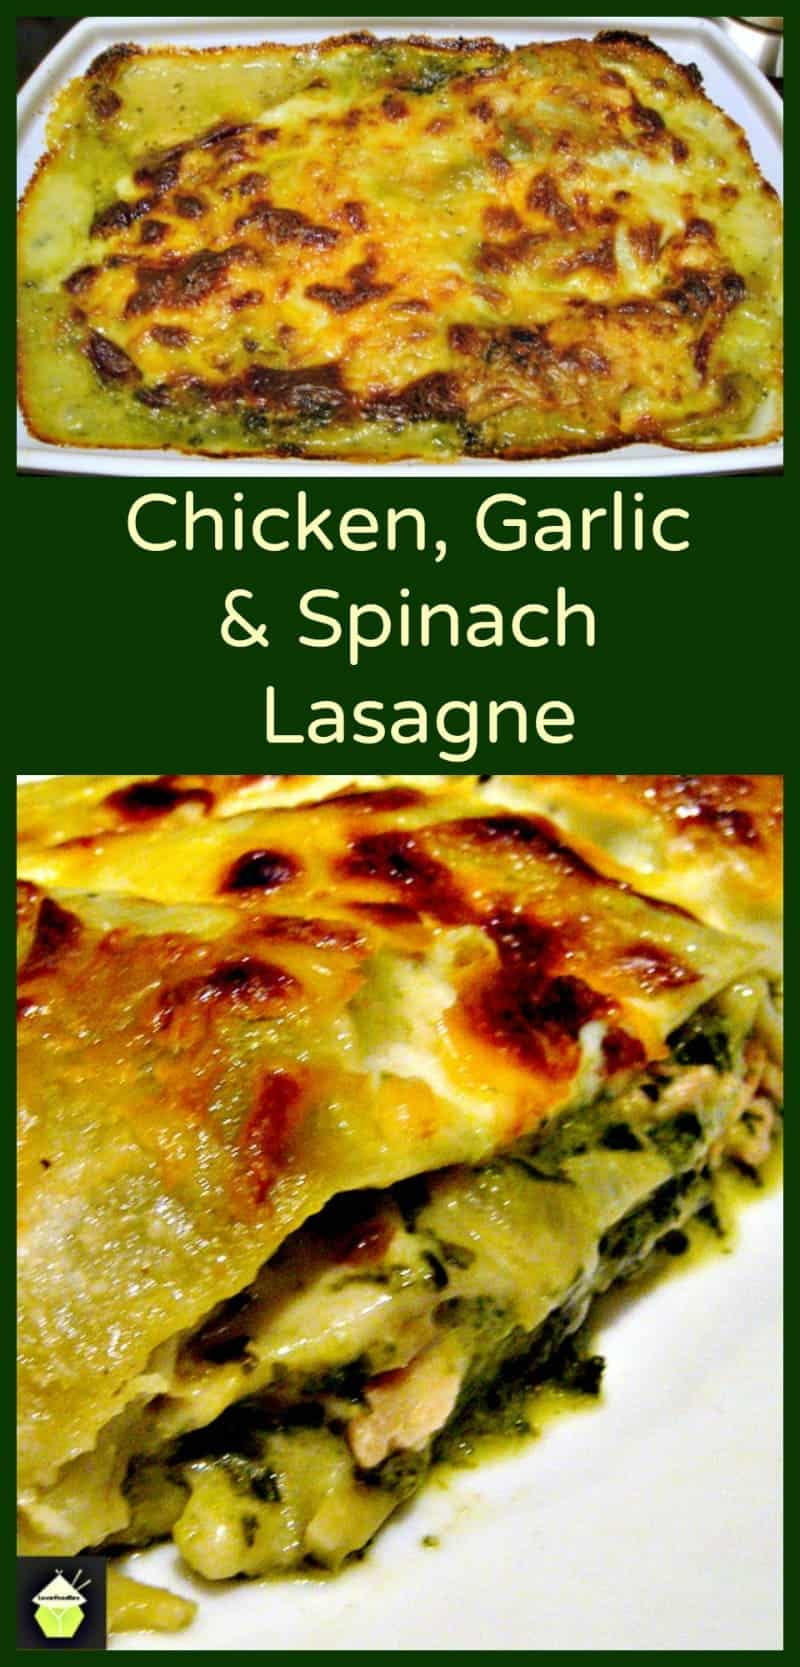 Chicken, Garlic & Spinach Lasagna - An easy recipe full of flavour and ...